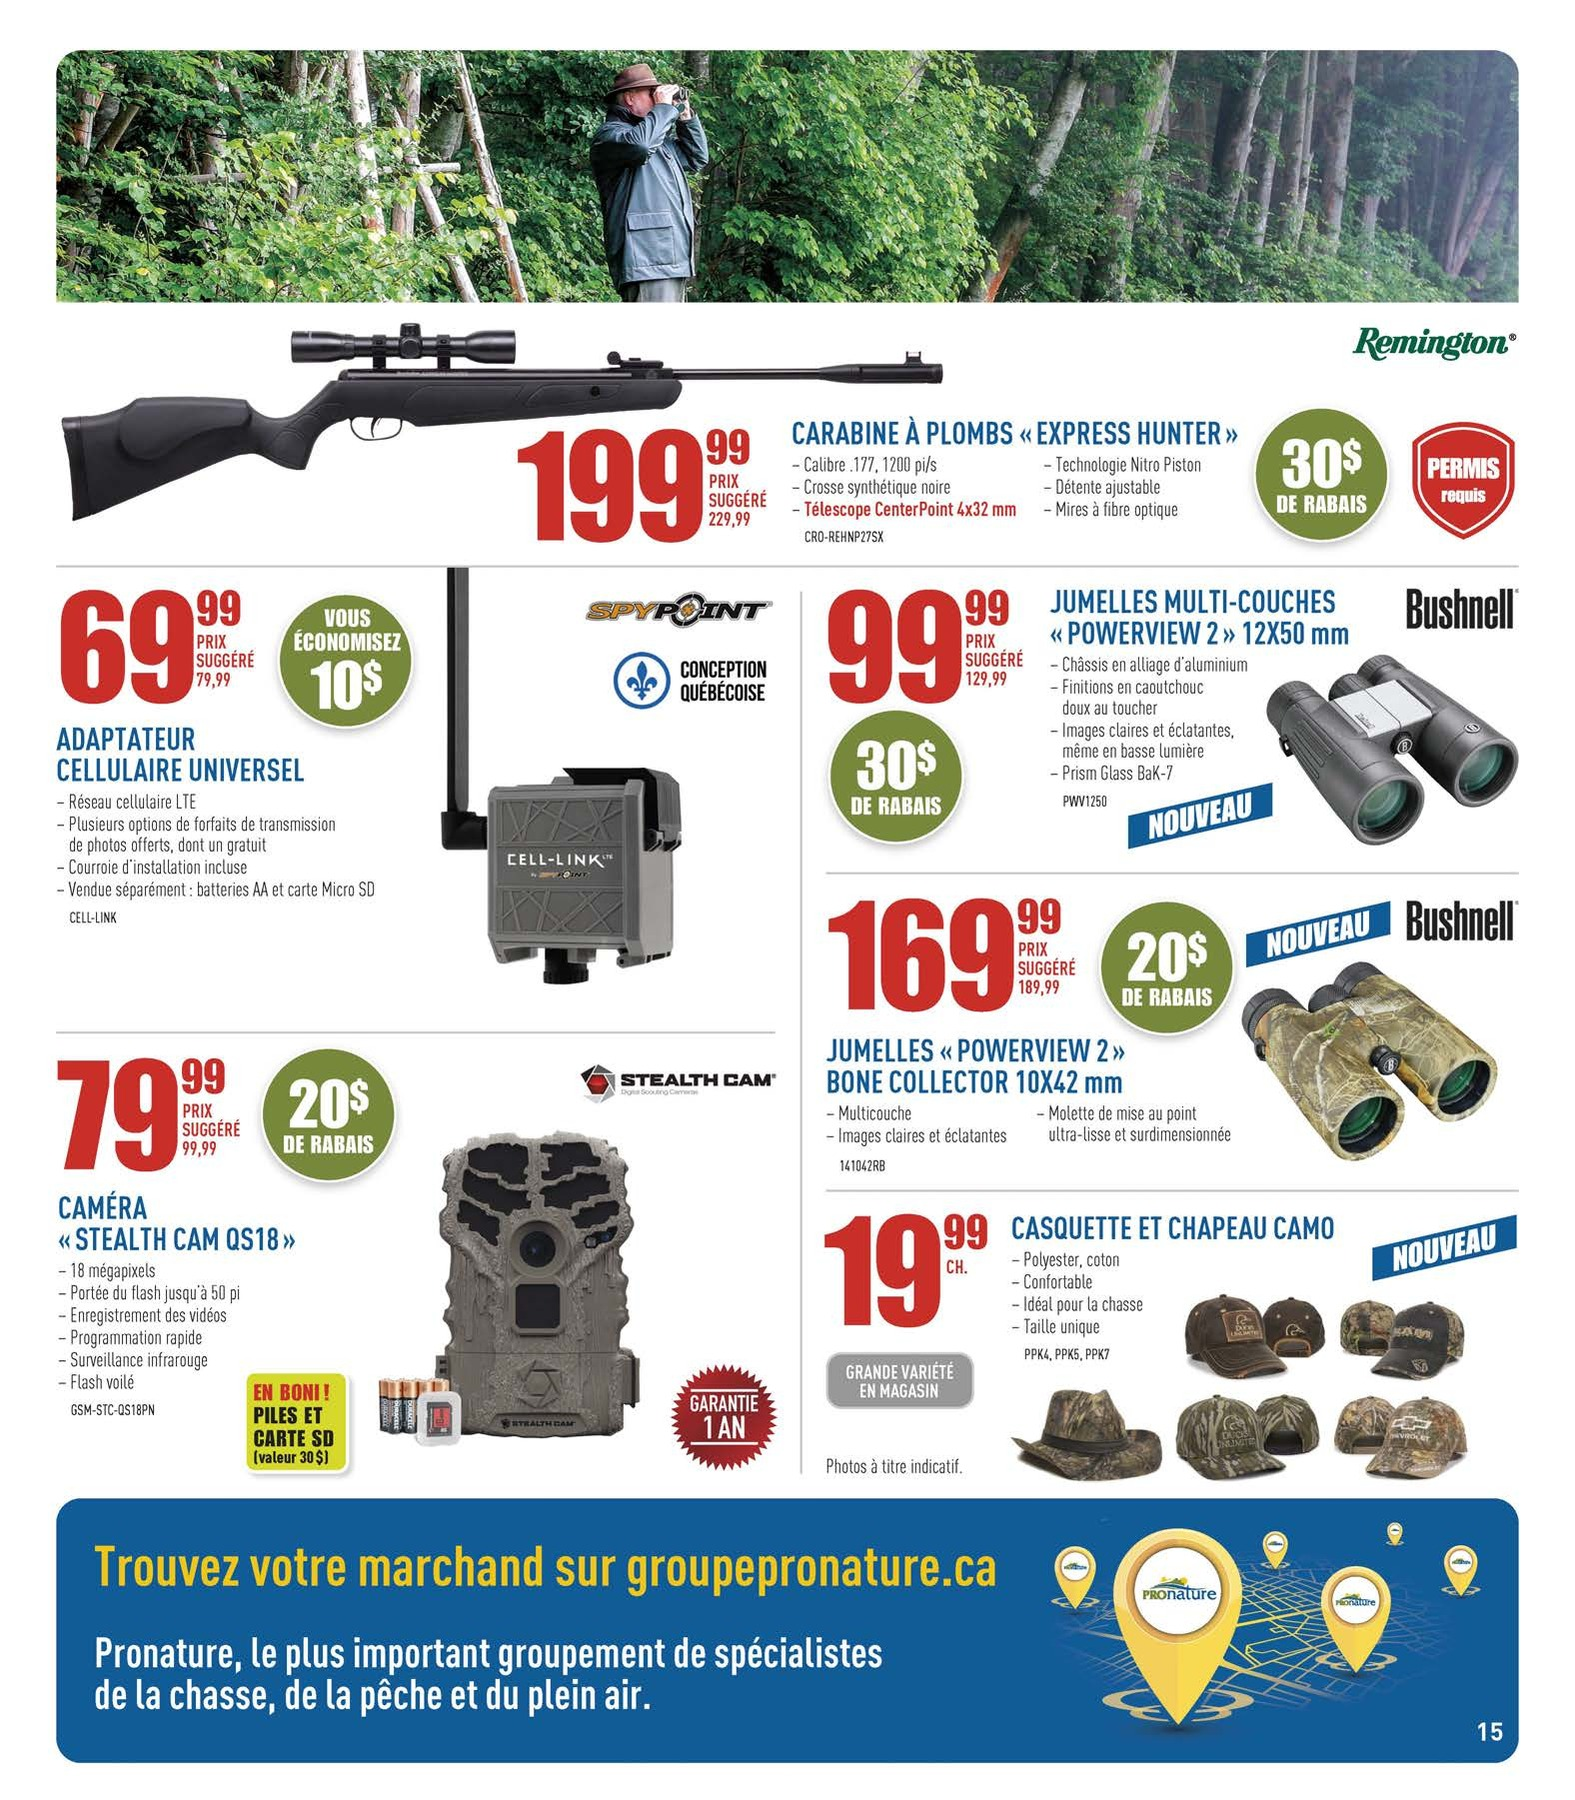 Flyer 210516 792 page 15 fr 1620160194